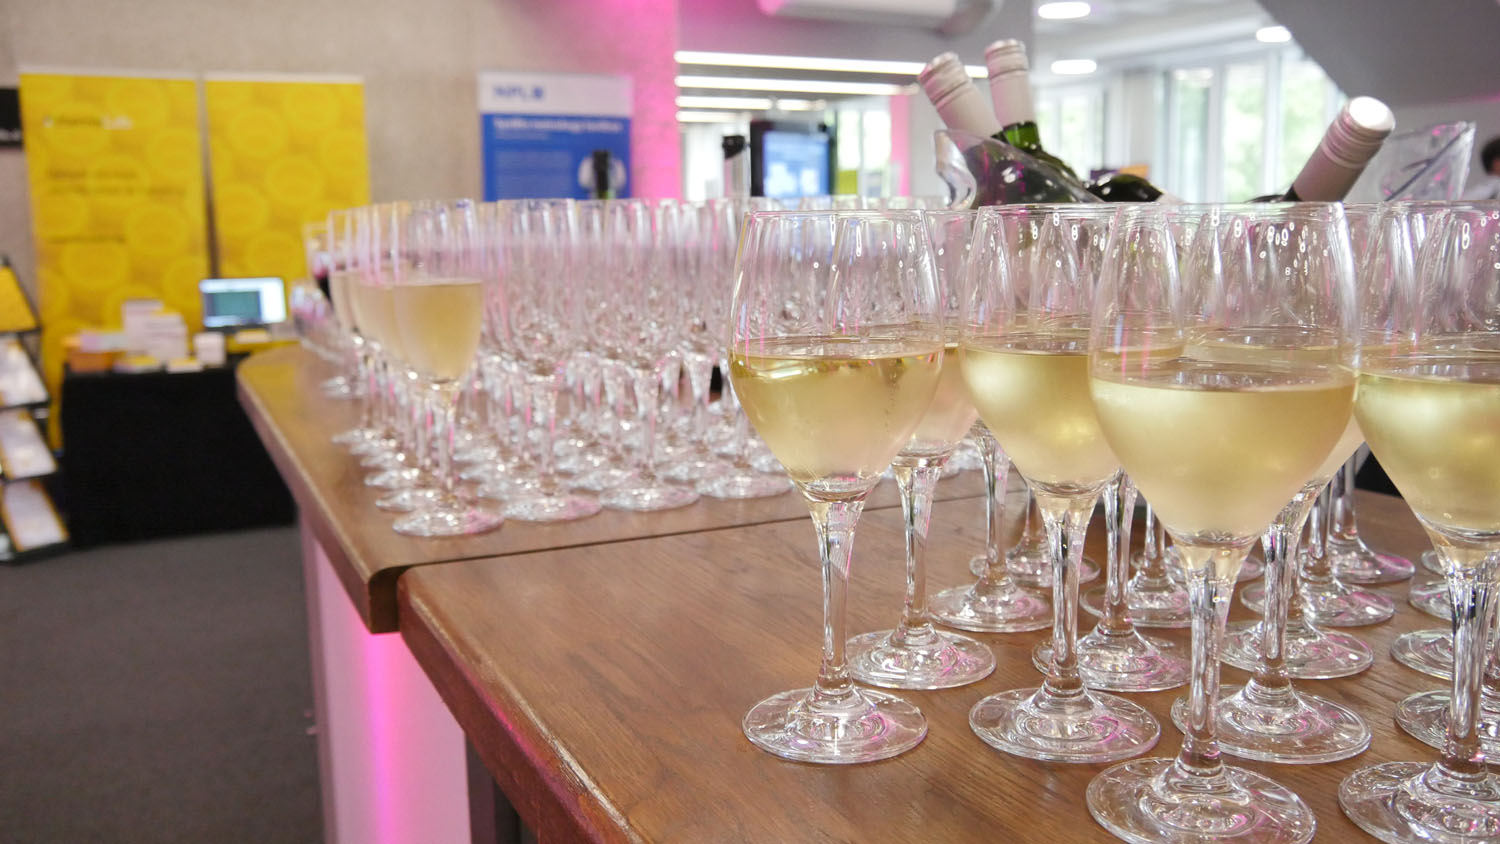 Champagne Reception, sponsored by Twist Bioscience